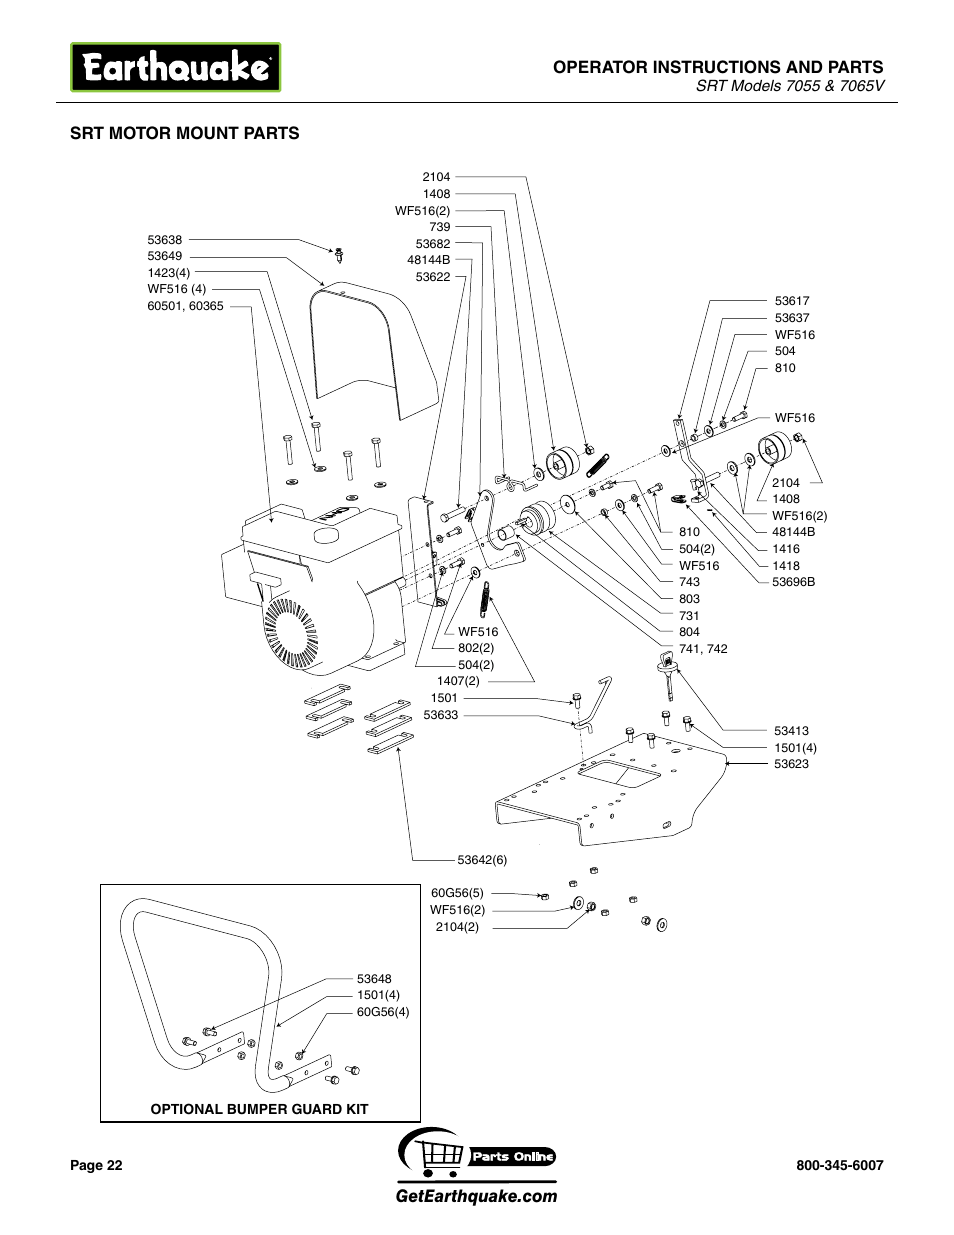 Operator instructions and parts, Srt motor mount parts